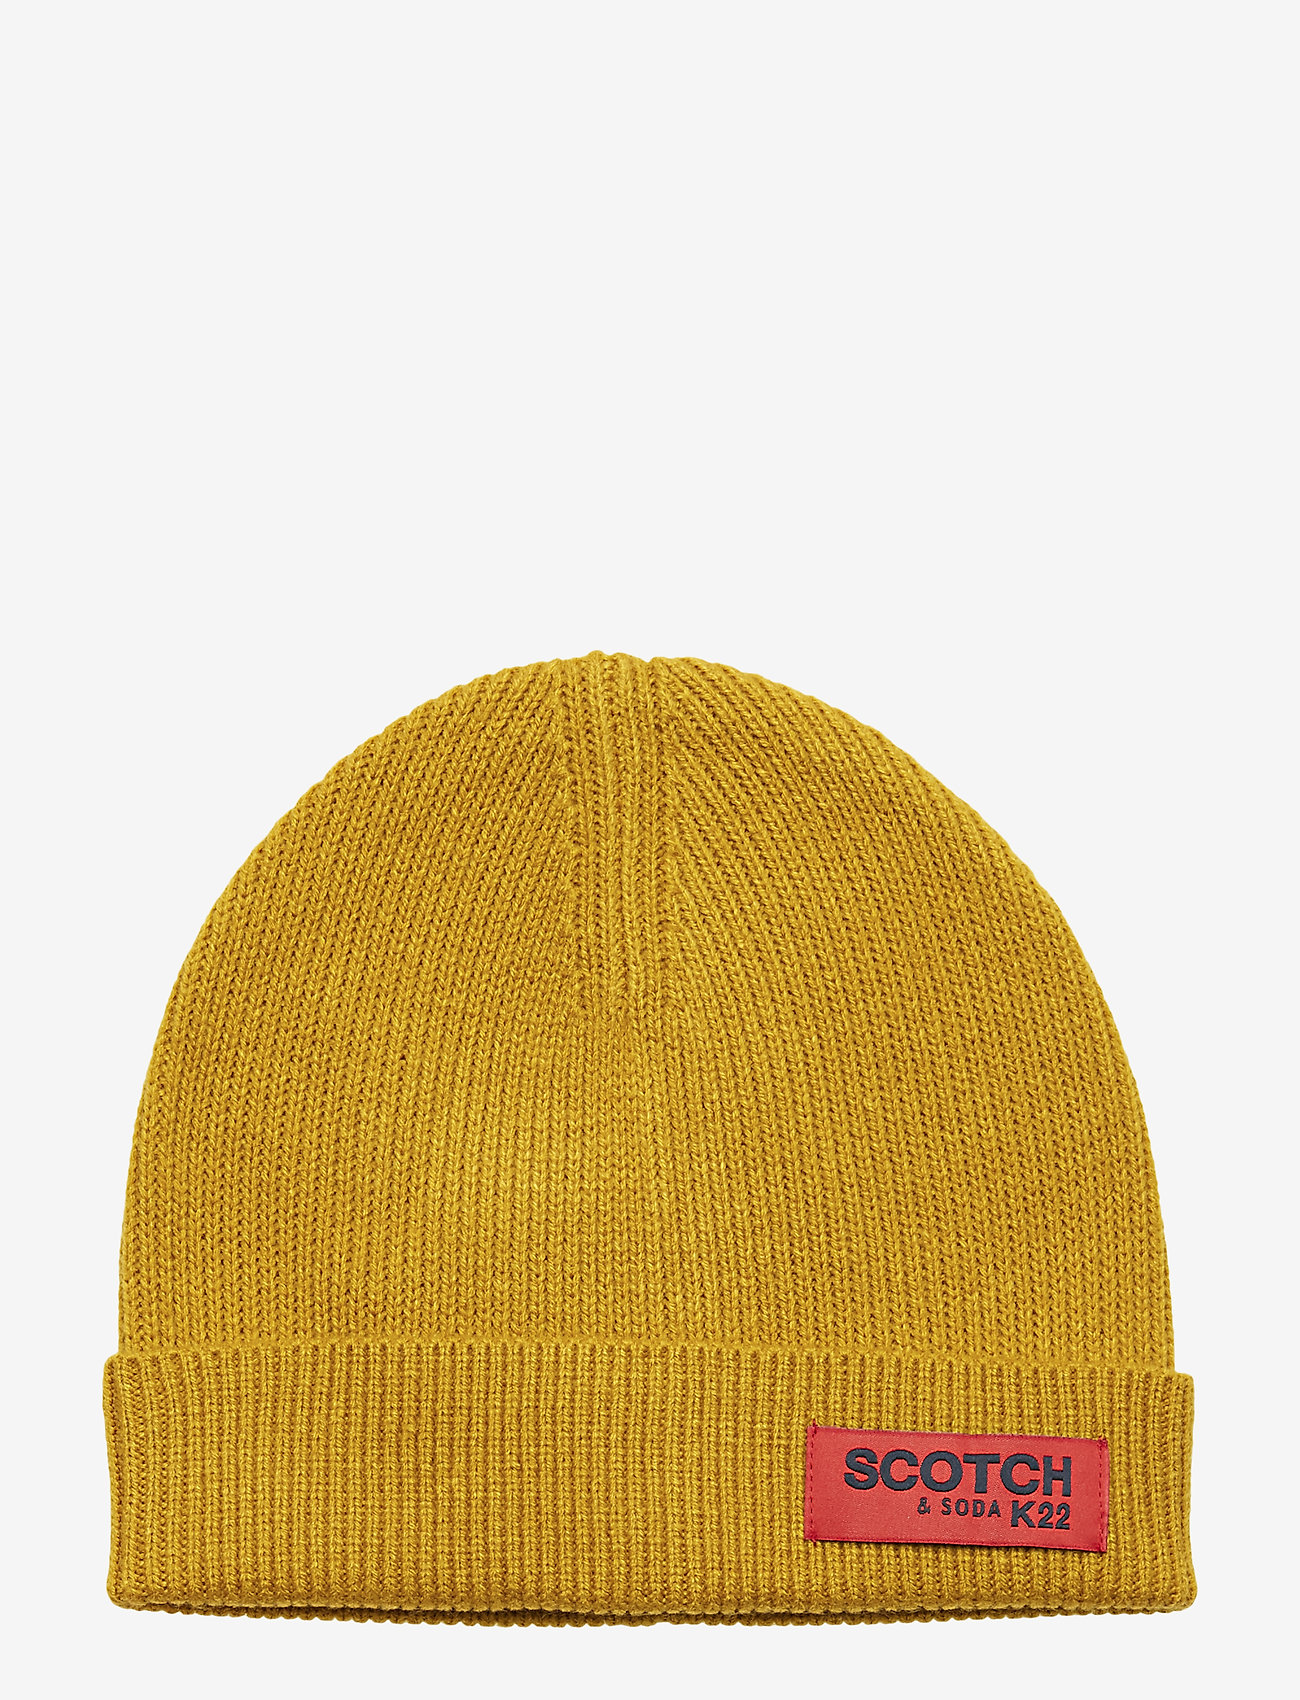 Scotch & Soda - Classic rib knit beanie - beanies - nutmeg - 0